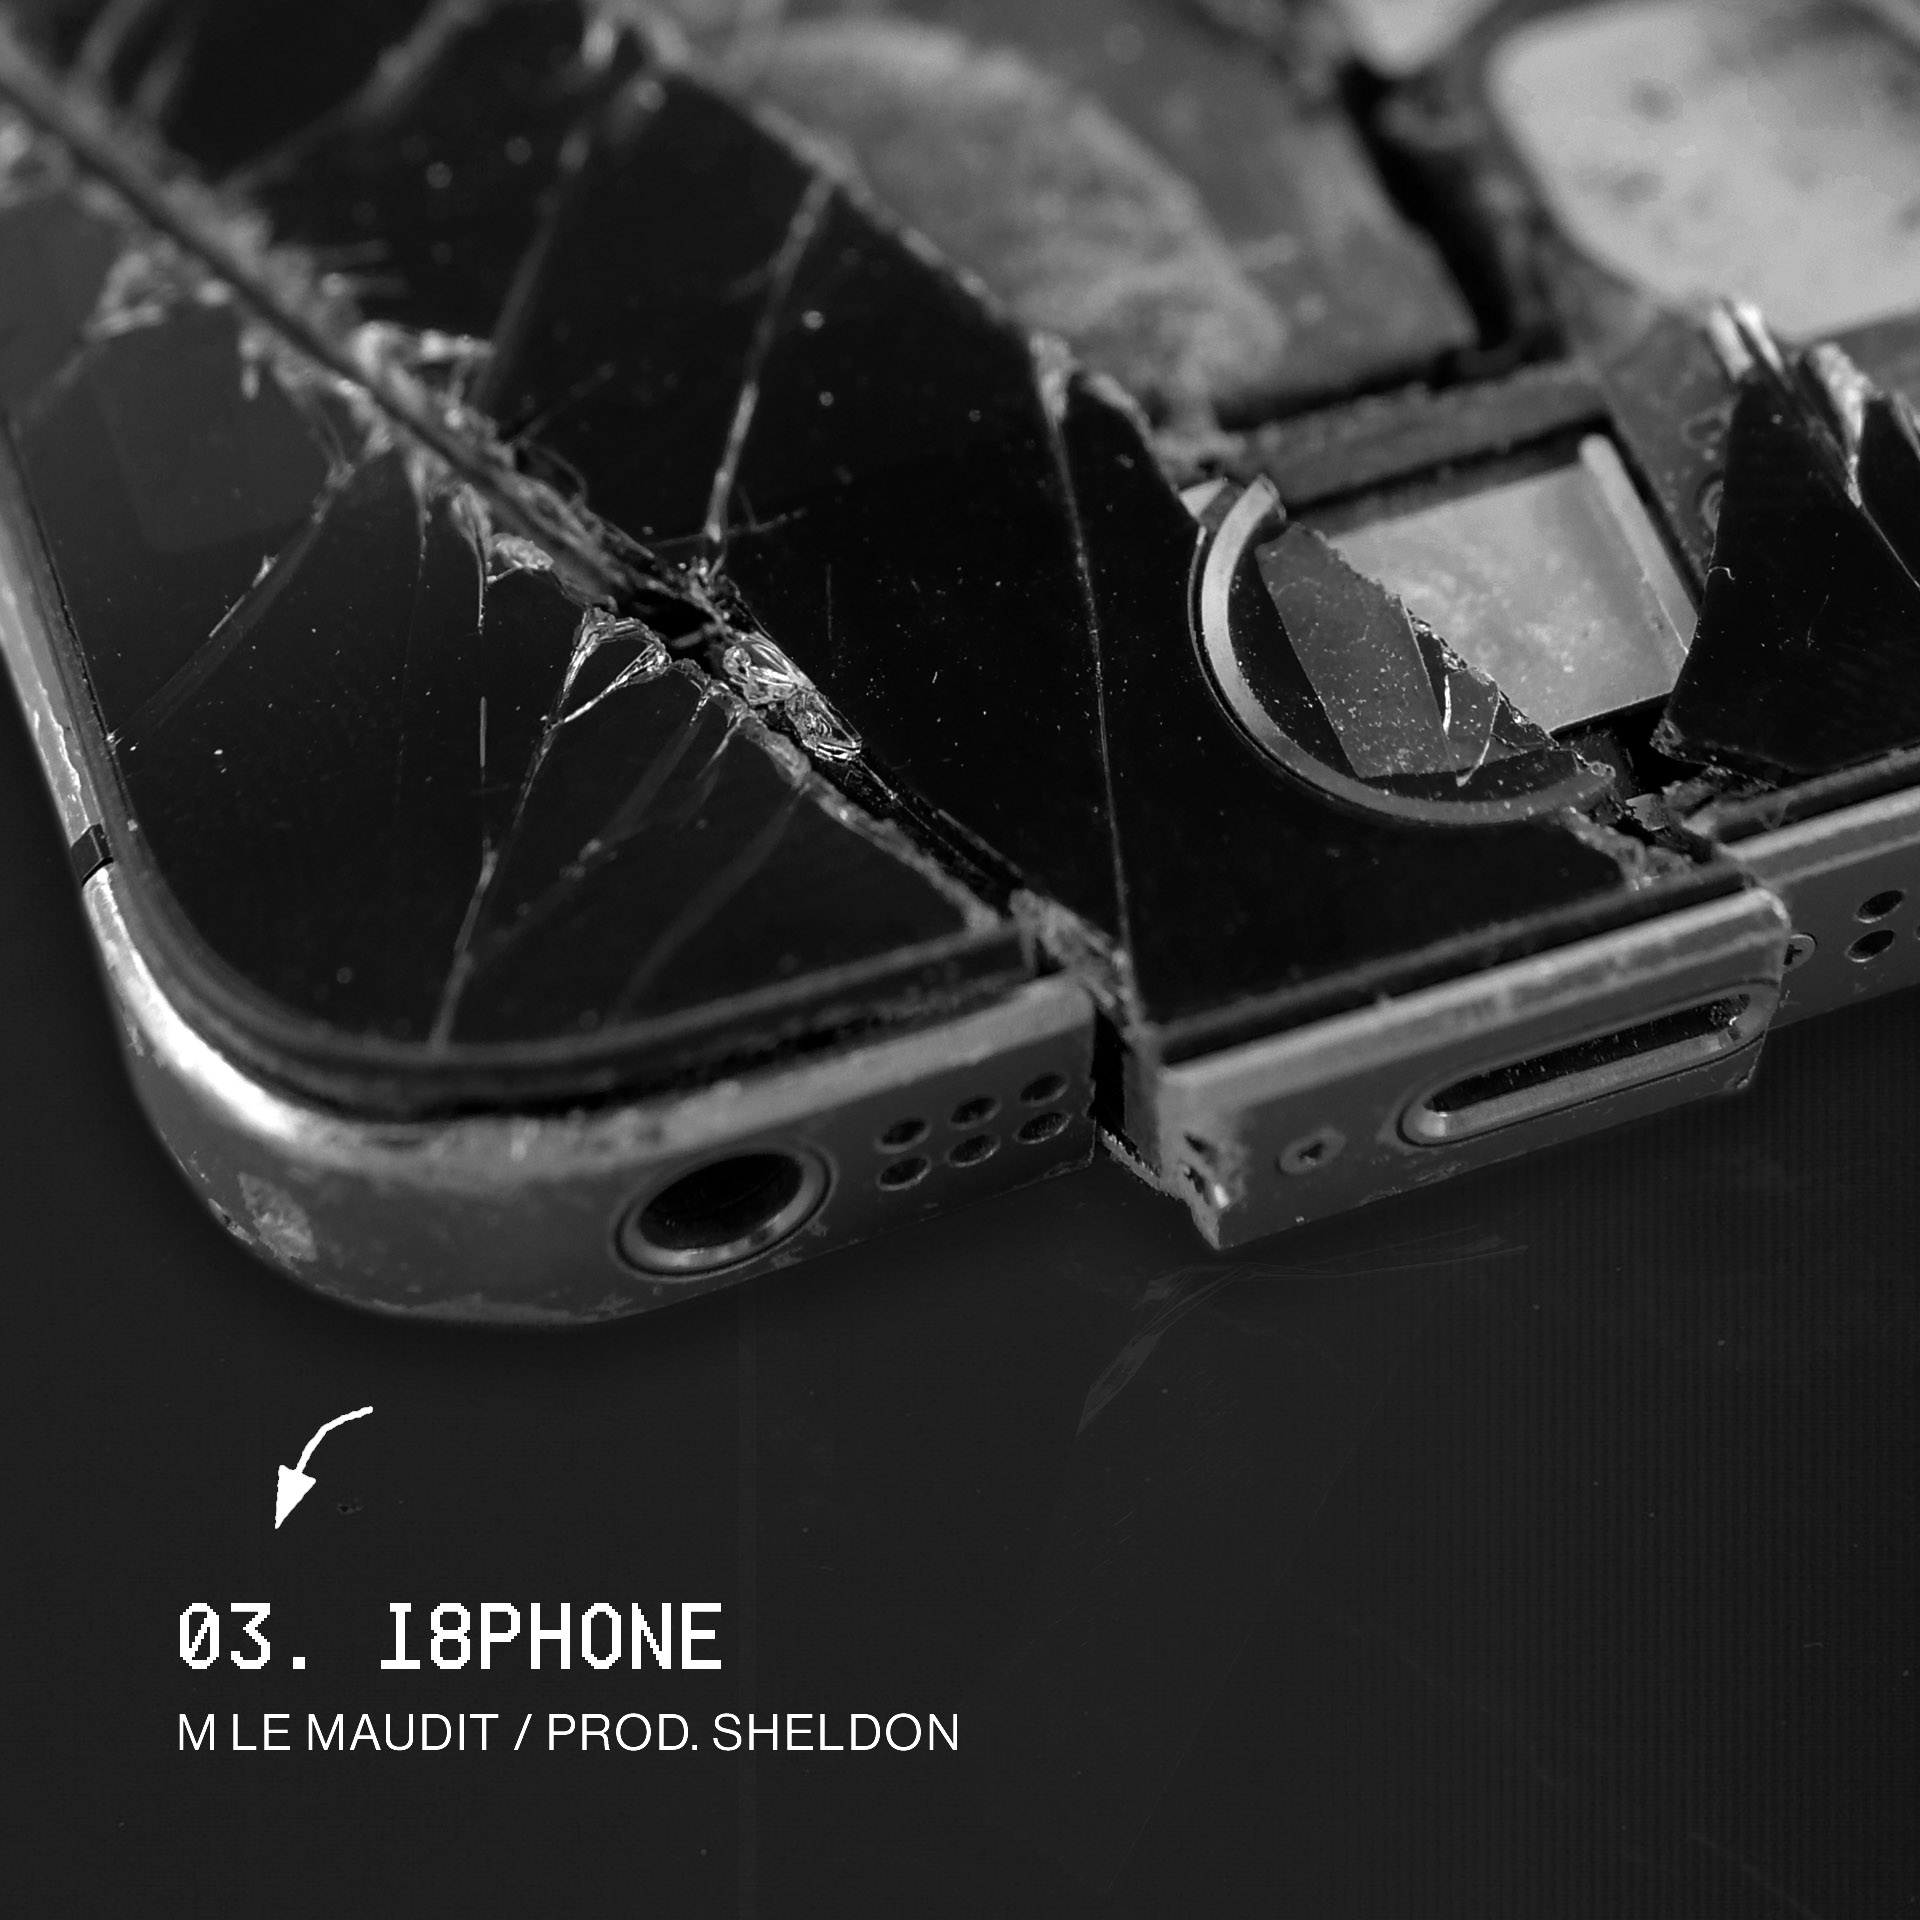 Broken iPhone asset for Inspire, created by Perimetre studio a creative studio based in Paris